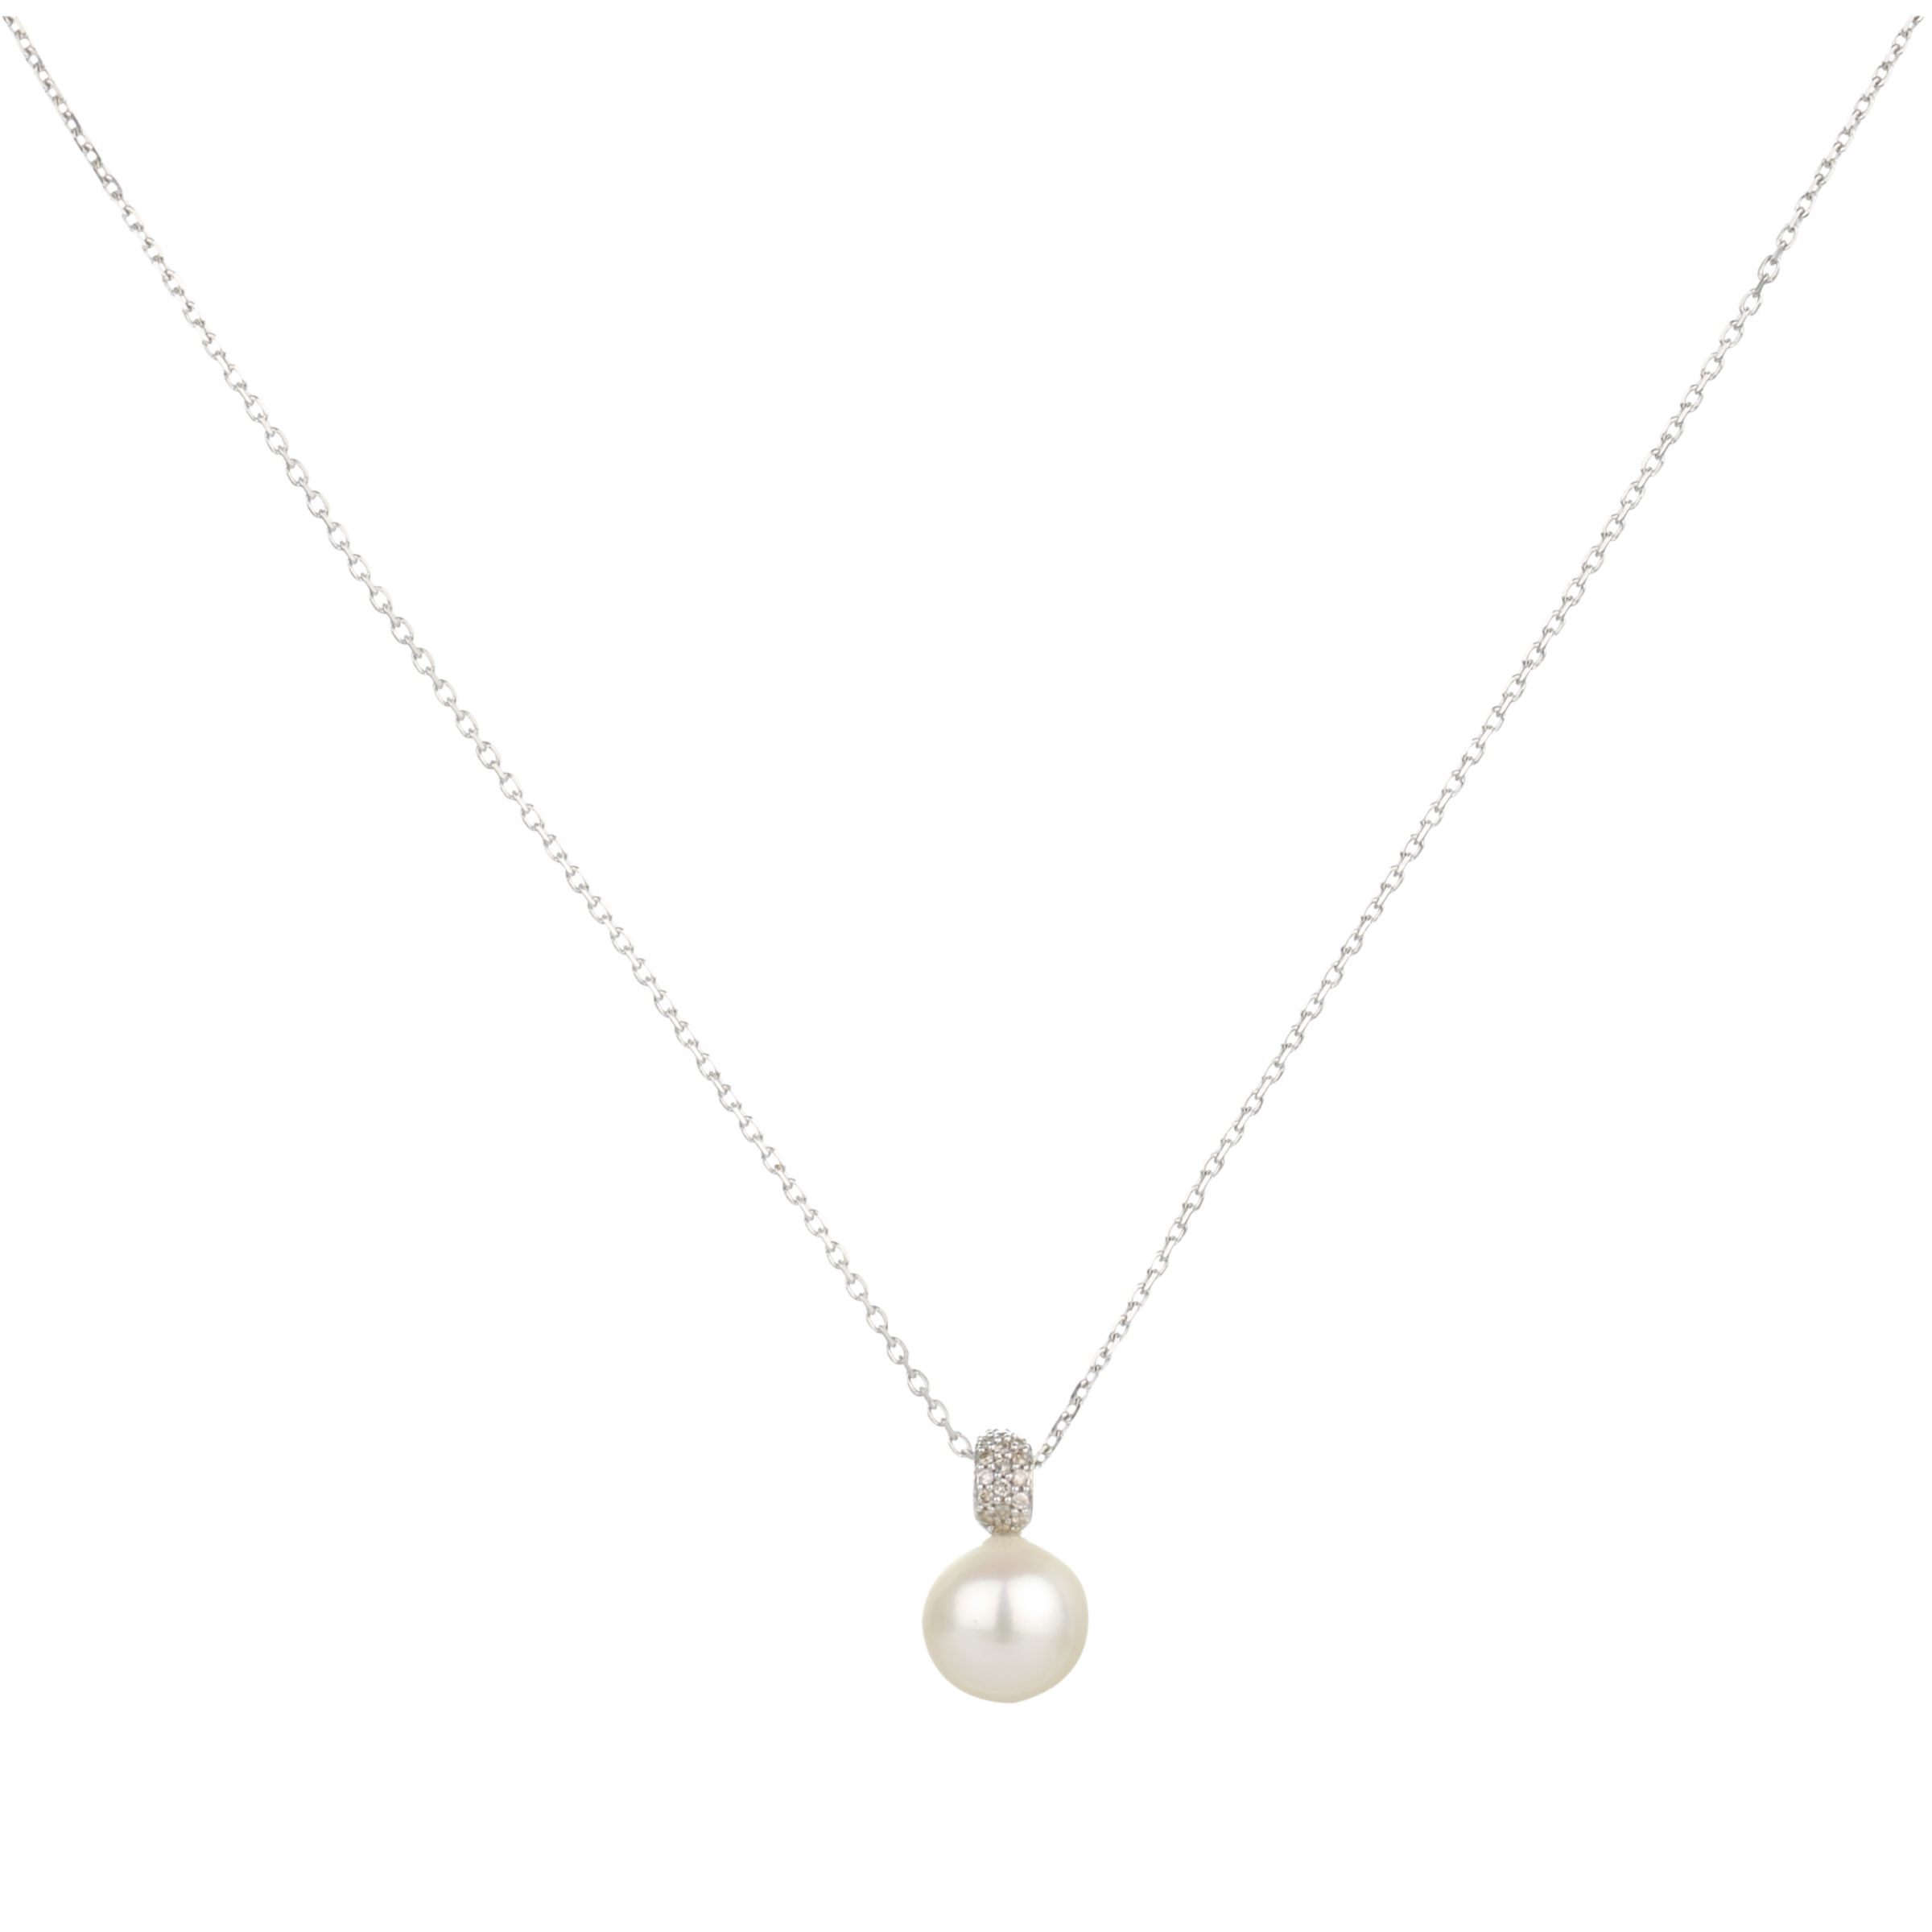 9ct White Gold Diamond Loop White Fresh Water Pearl Pendant Necklace